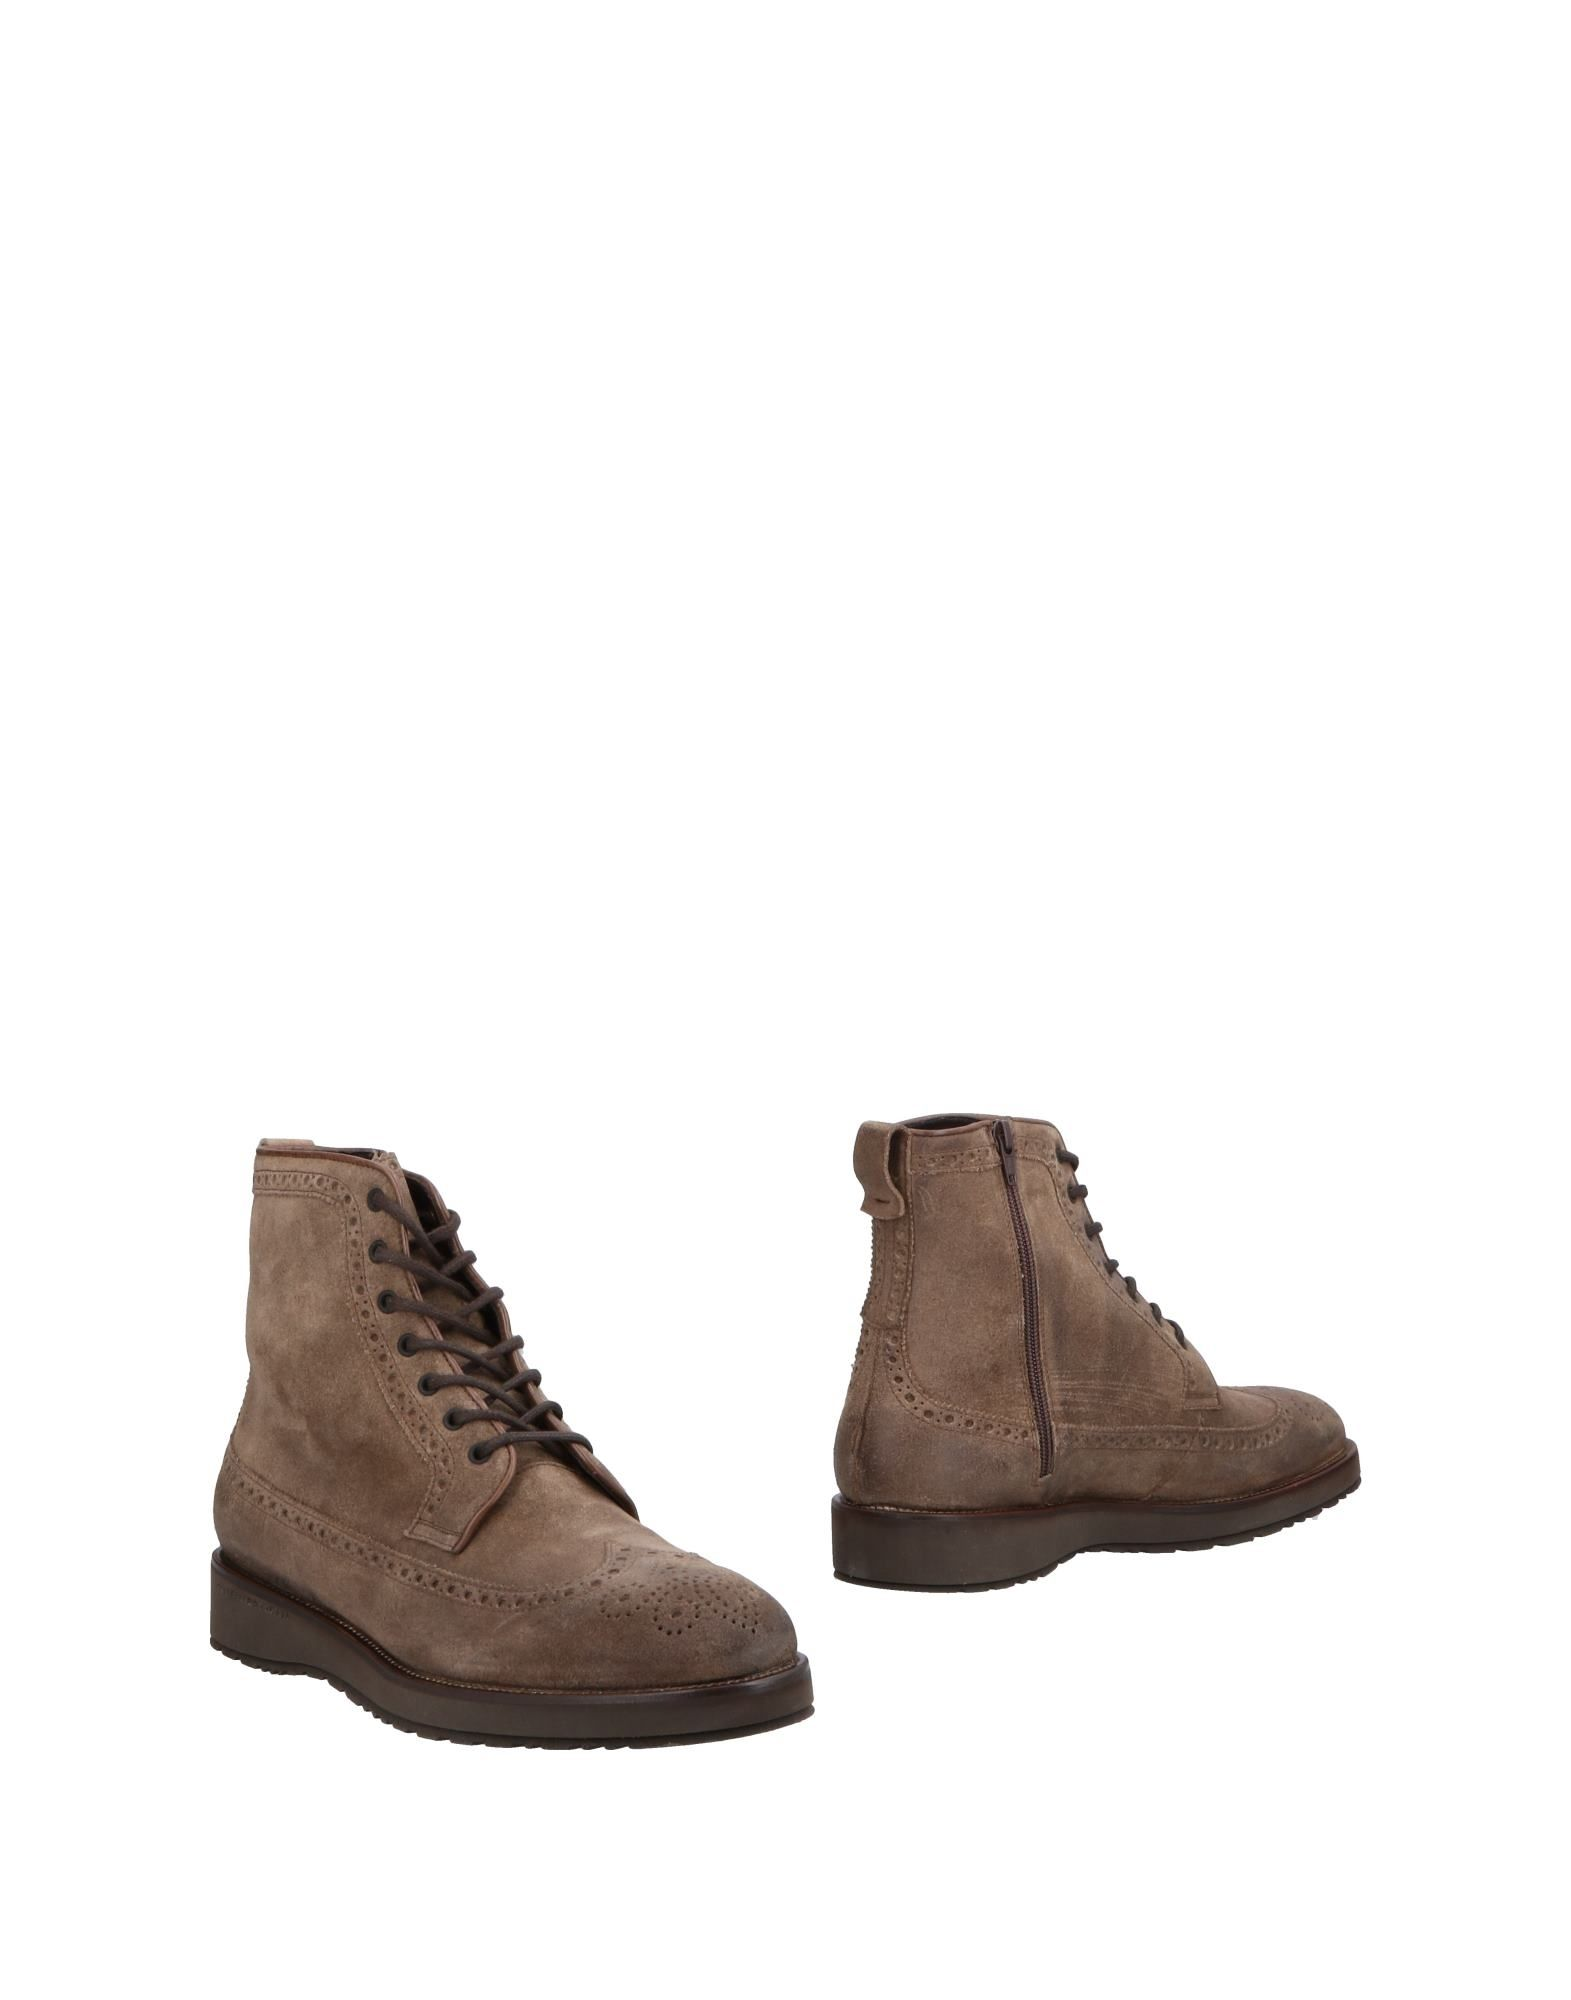 Fratelli Rossetti Boots - Men Fratelli Rossetti Boots online on 11501721UN  United Kingdom - 11501721UN on bb4f00